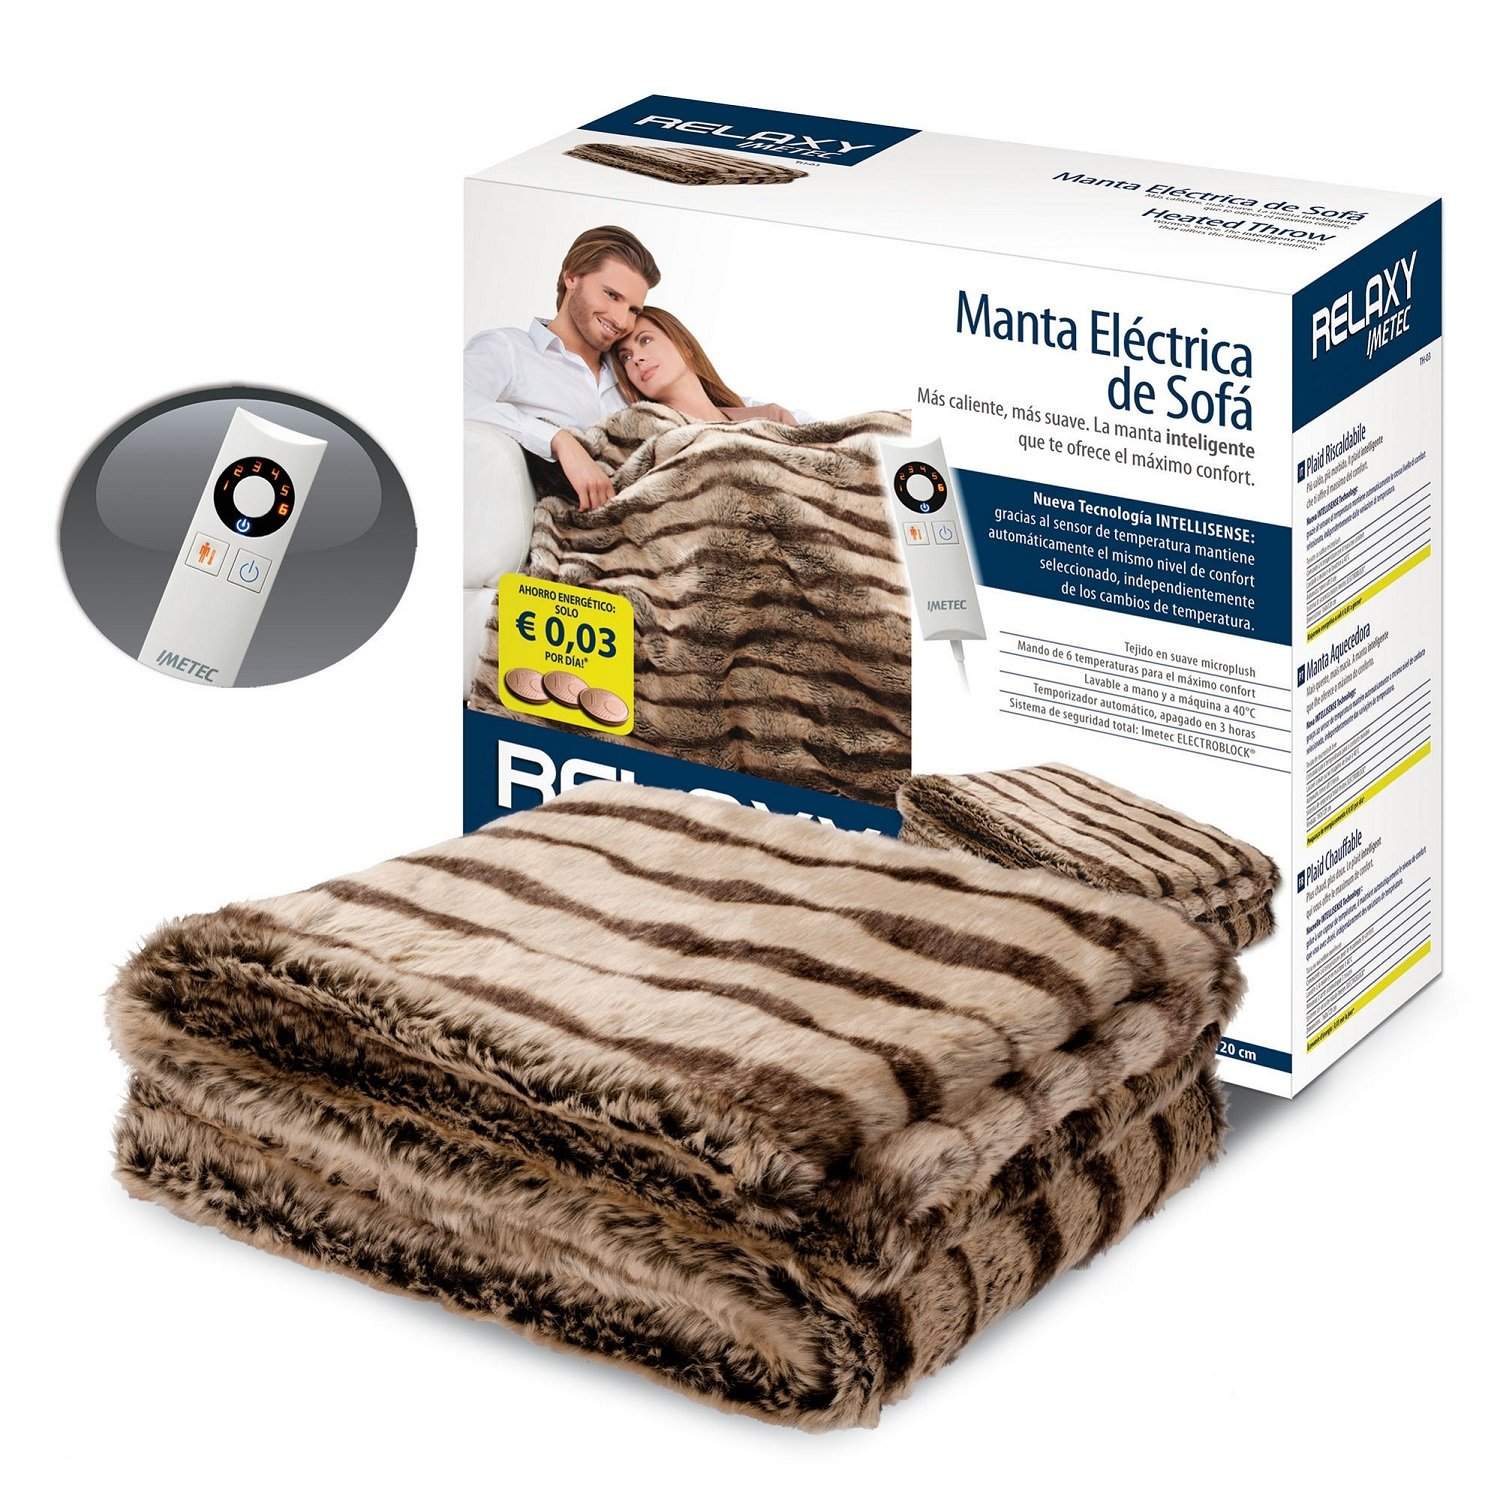 Imetec Relaxy IntelliSense Electric Fleece Sofa Blanket 160 x 120